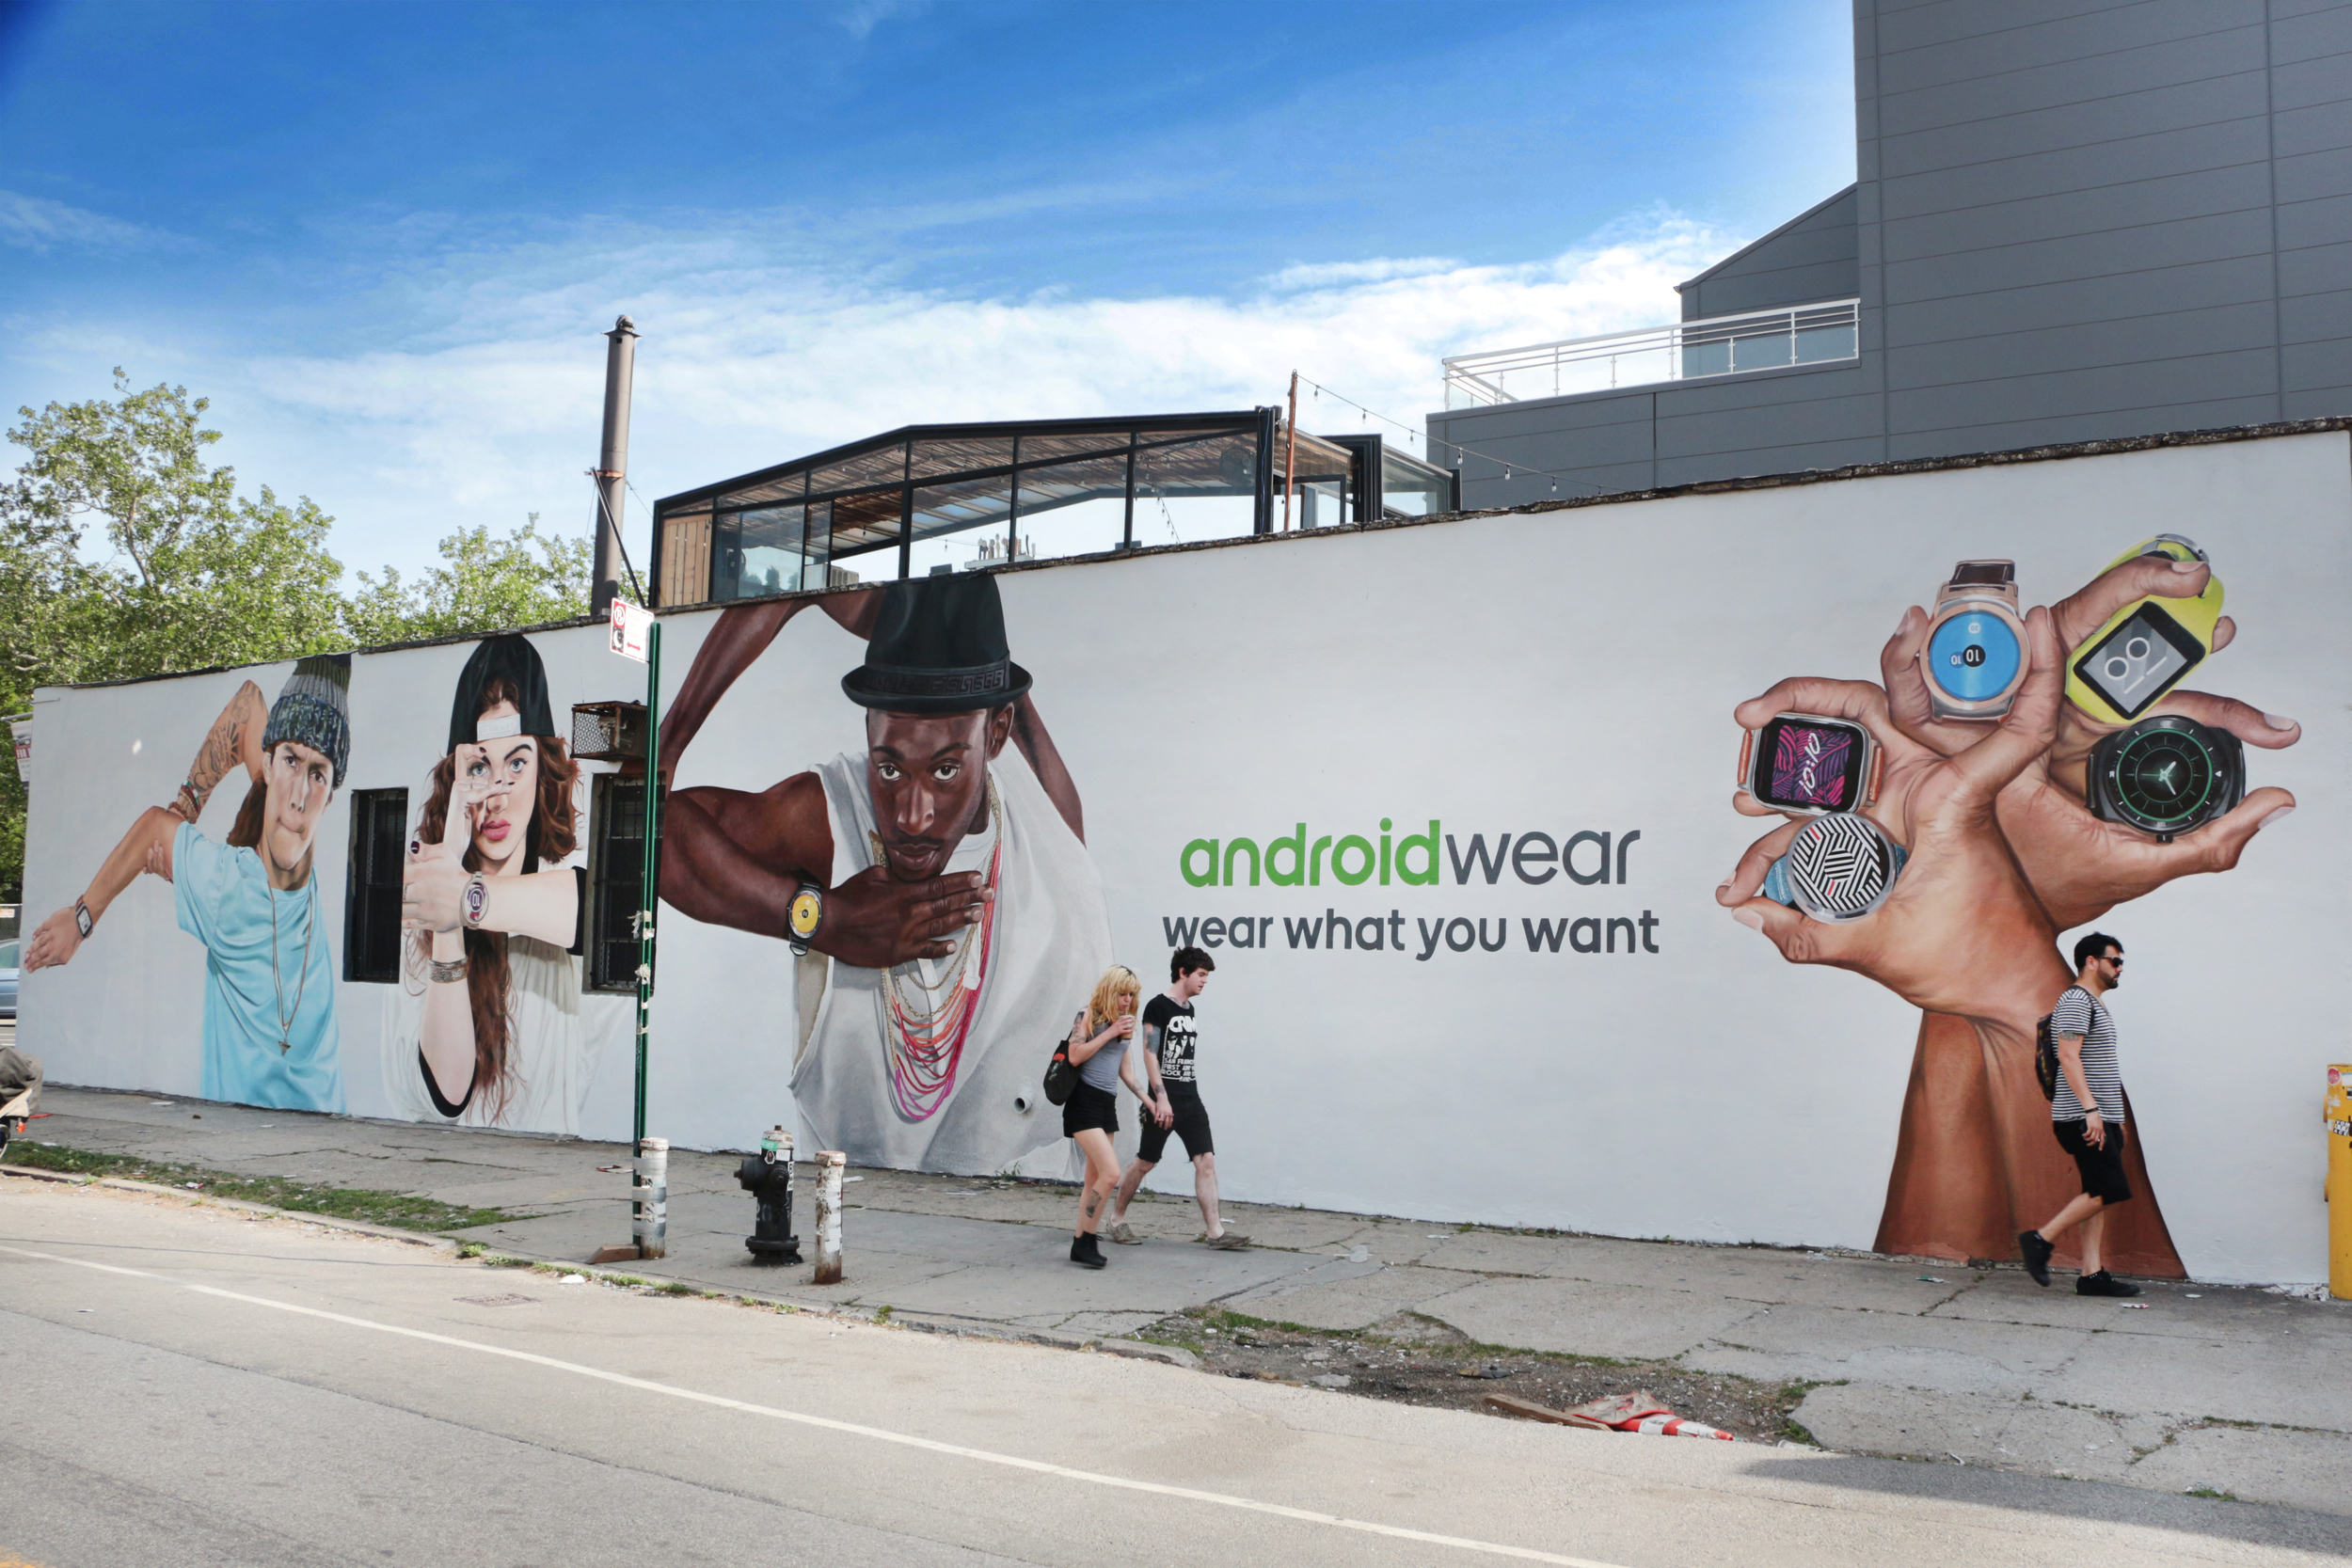 ANDROIDWEAR / GOOGLE